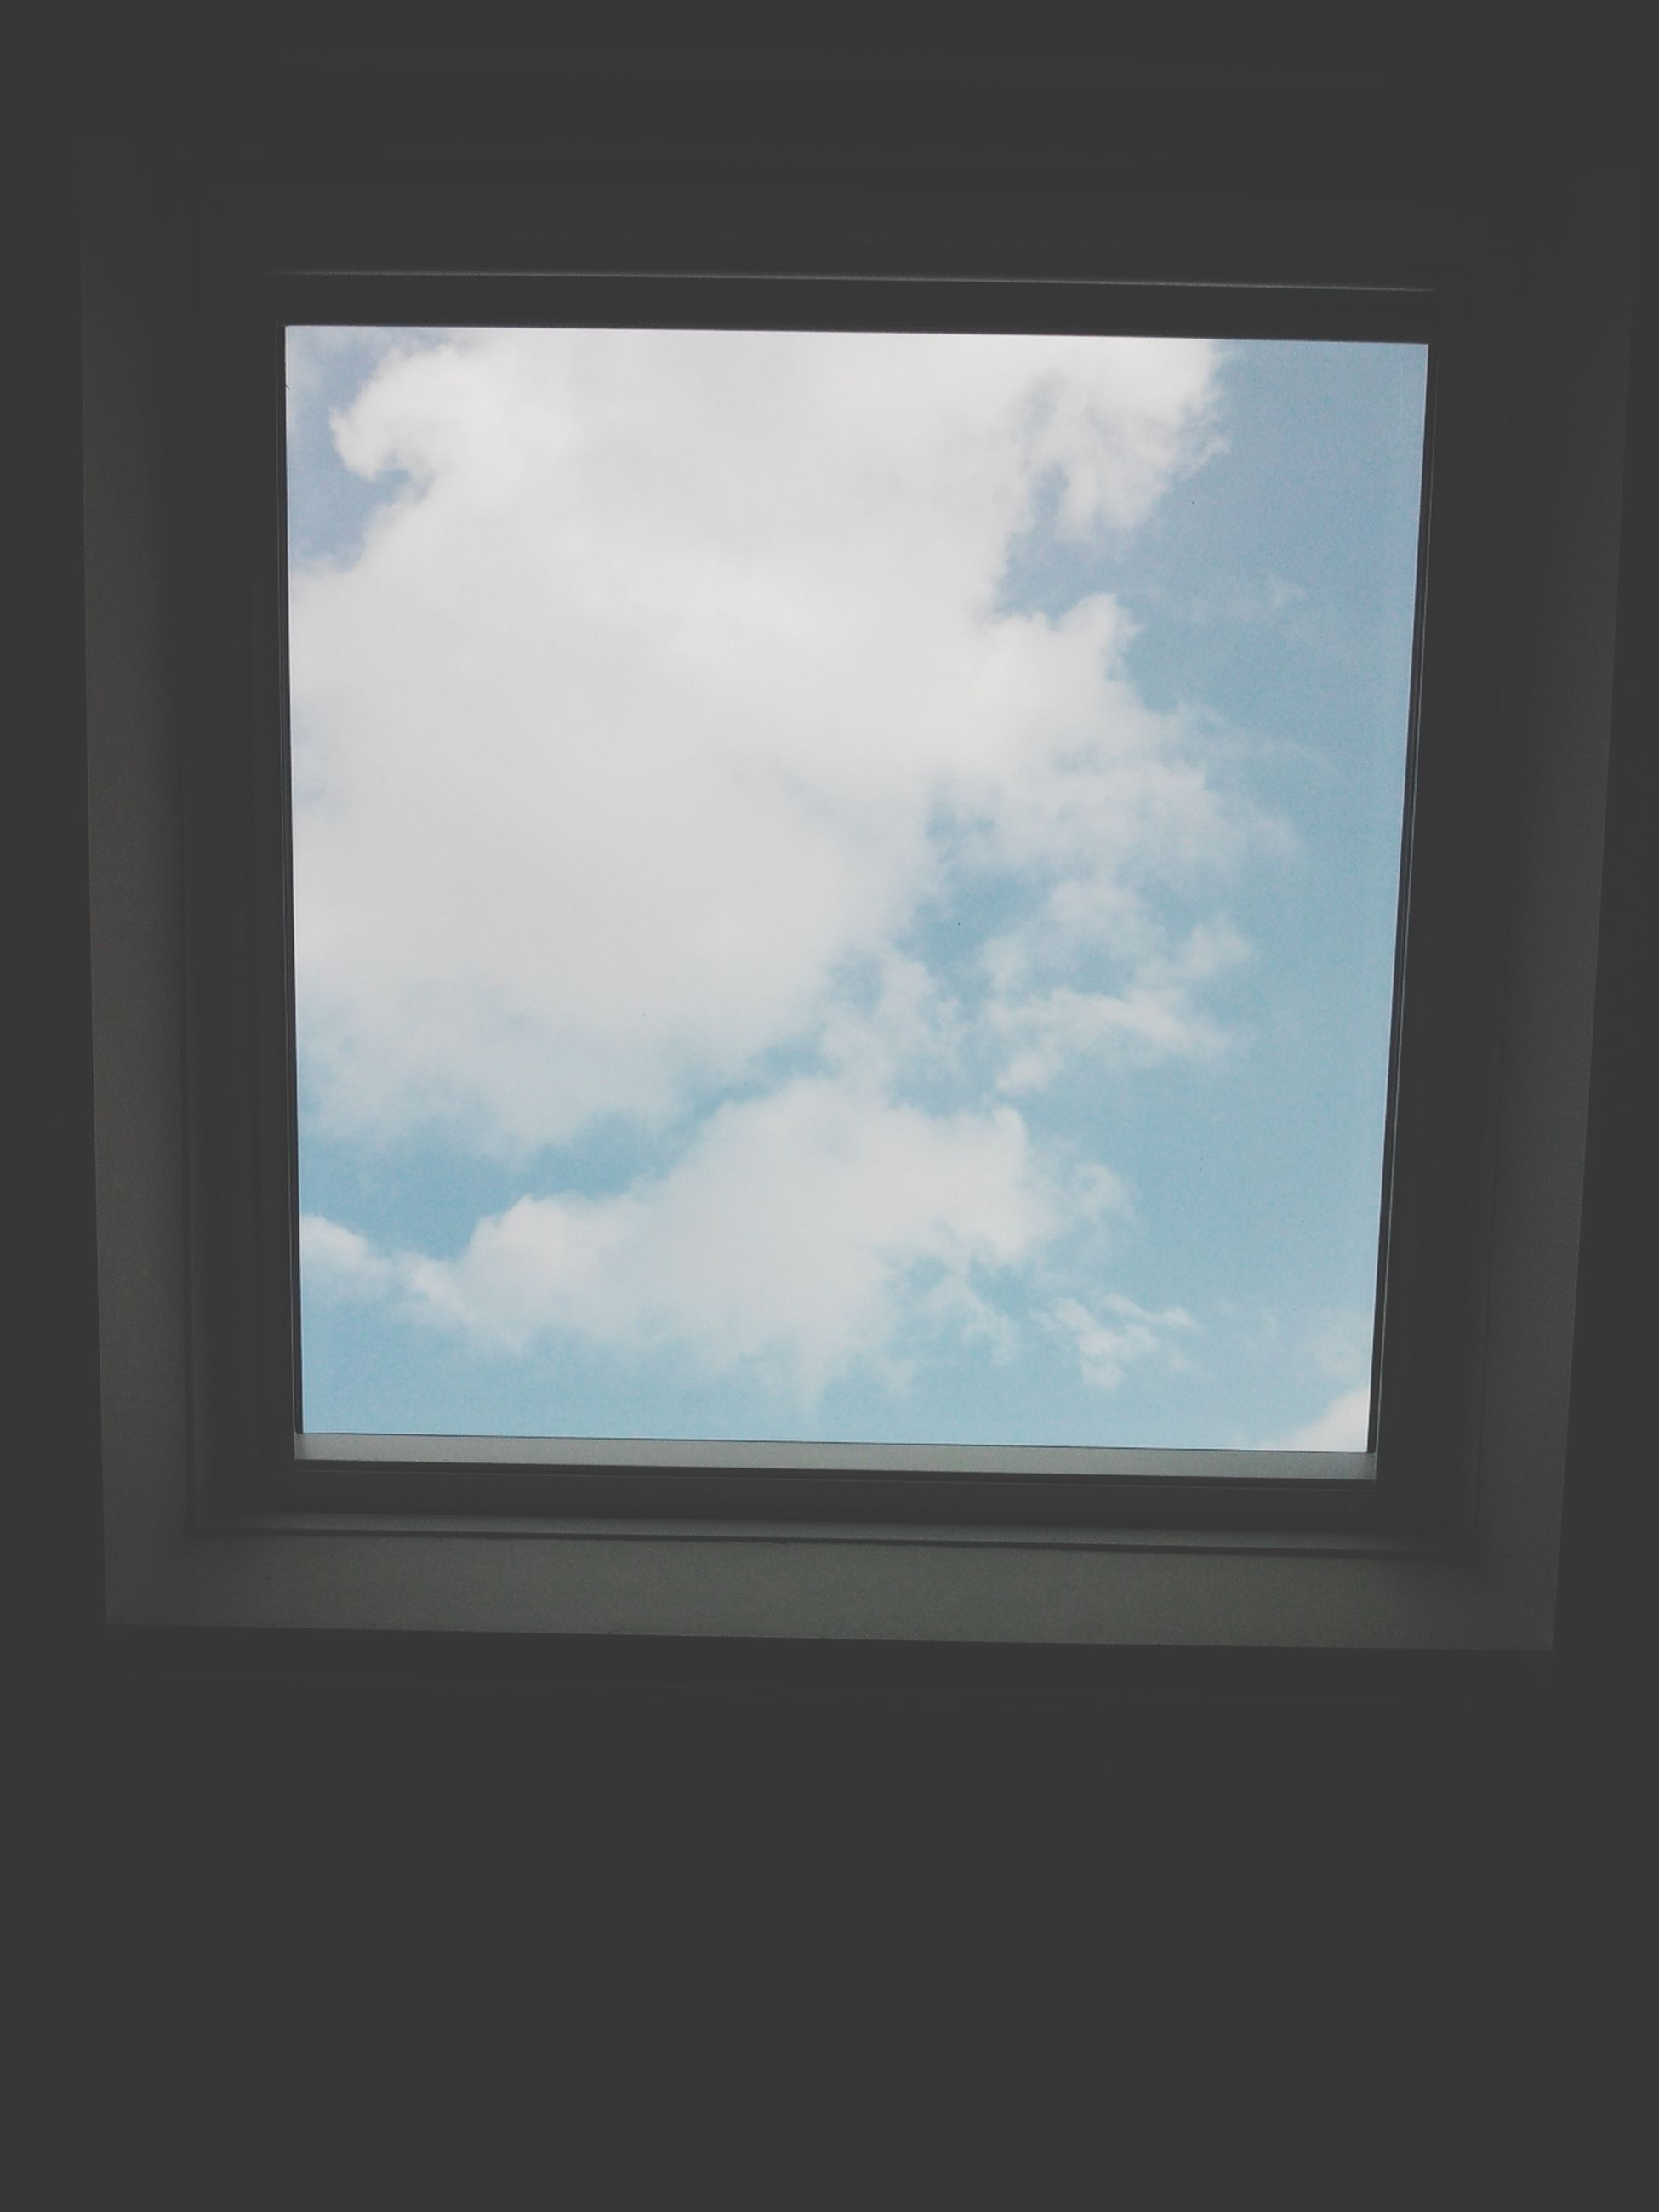 window, indoors, sky, architecture, built structure, glass - material, low angle view, transparent, cloud - sky, cloud, building exterior, day, glass, no people, building, looking through window, house, cloudy, geometric shape, silhouette